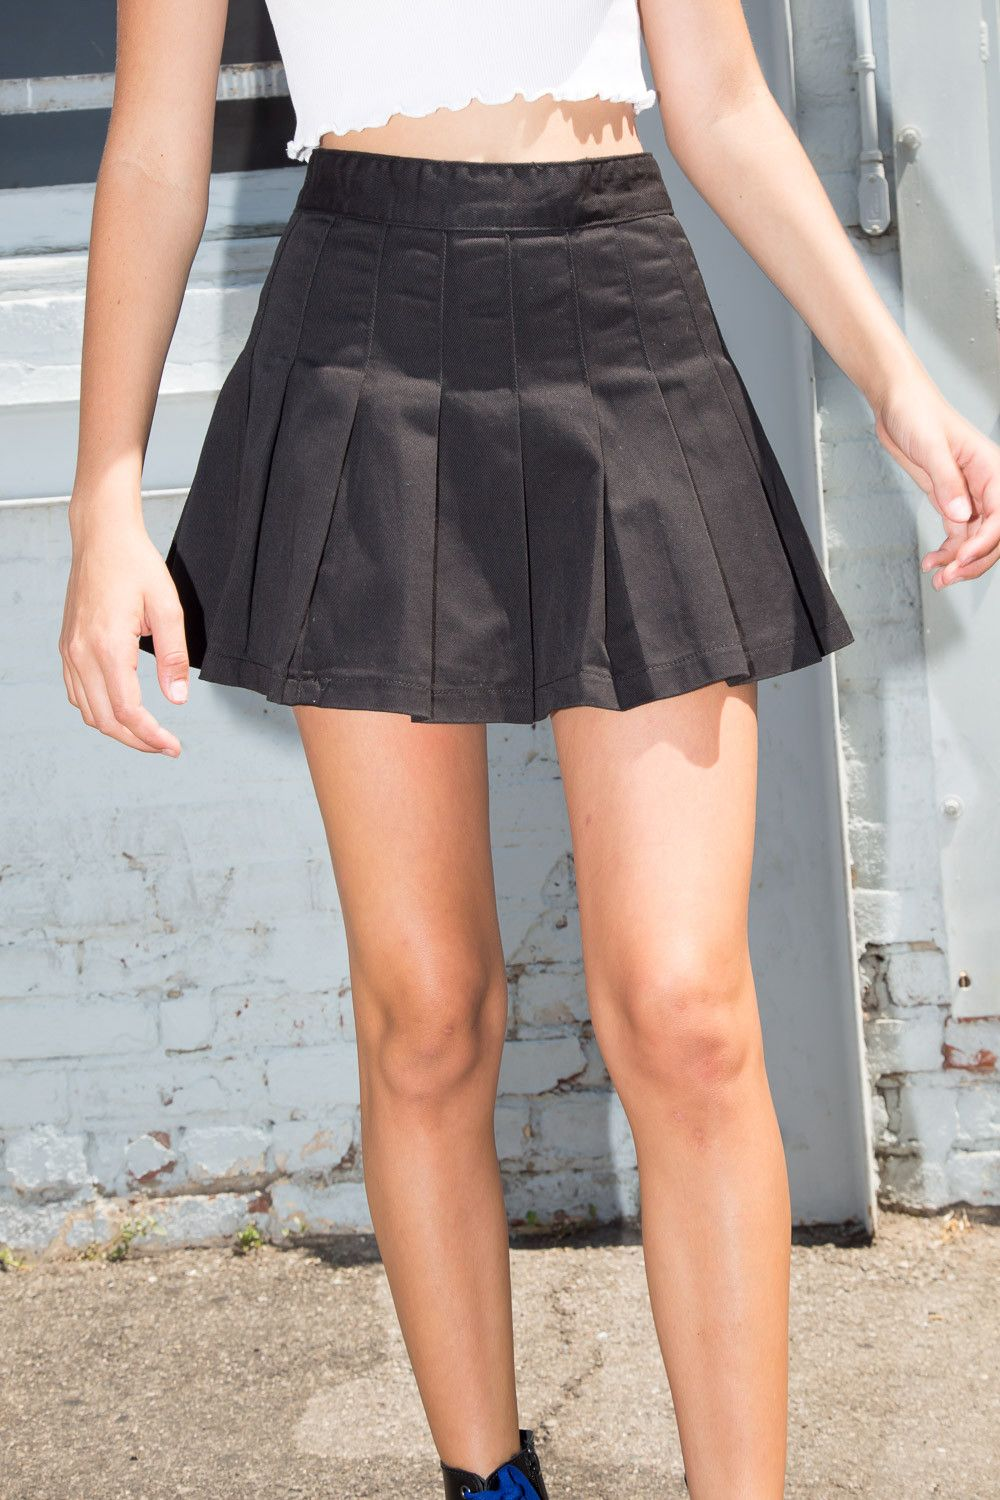 Skirts Bottoms Clothing In 2020 Tennis Skirt Outfit Pleated Skirt Outfit Short Pleated Tennis Skirt